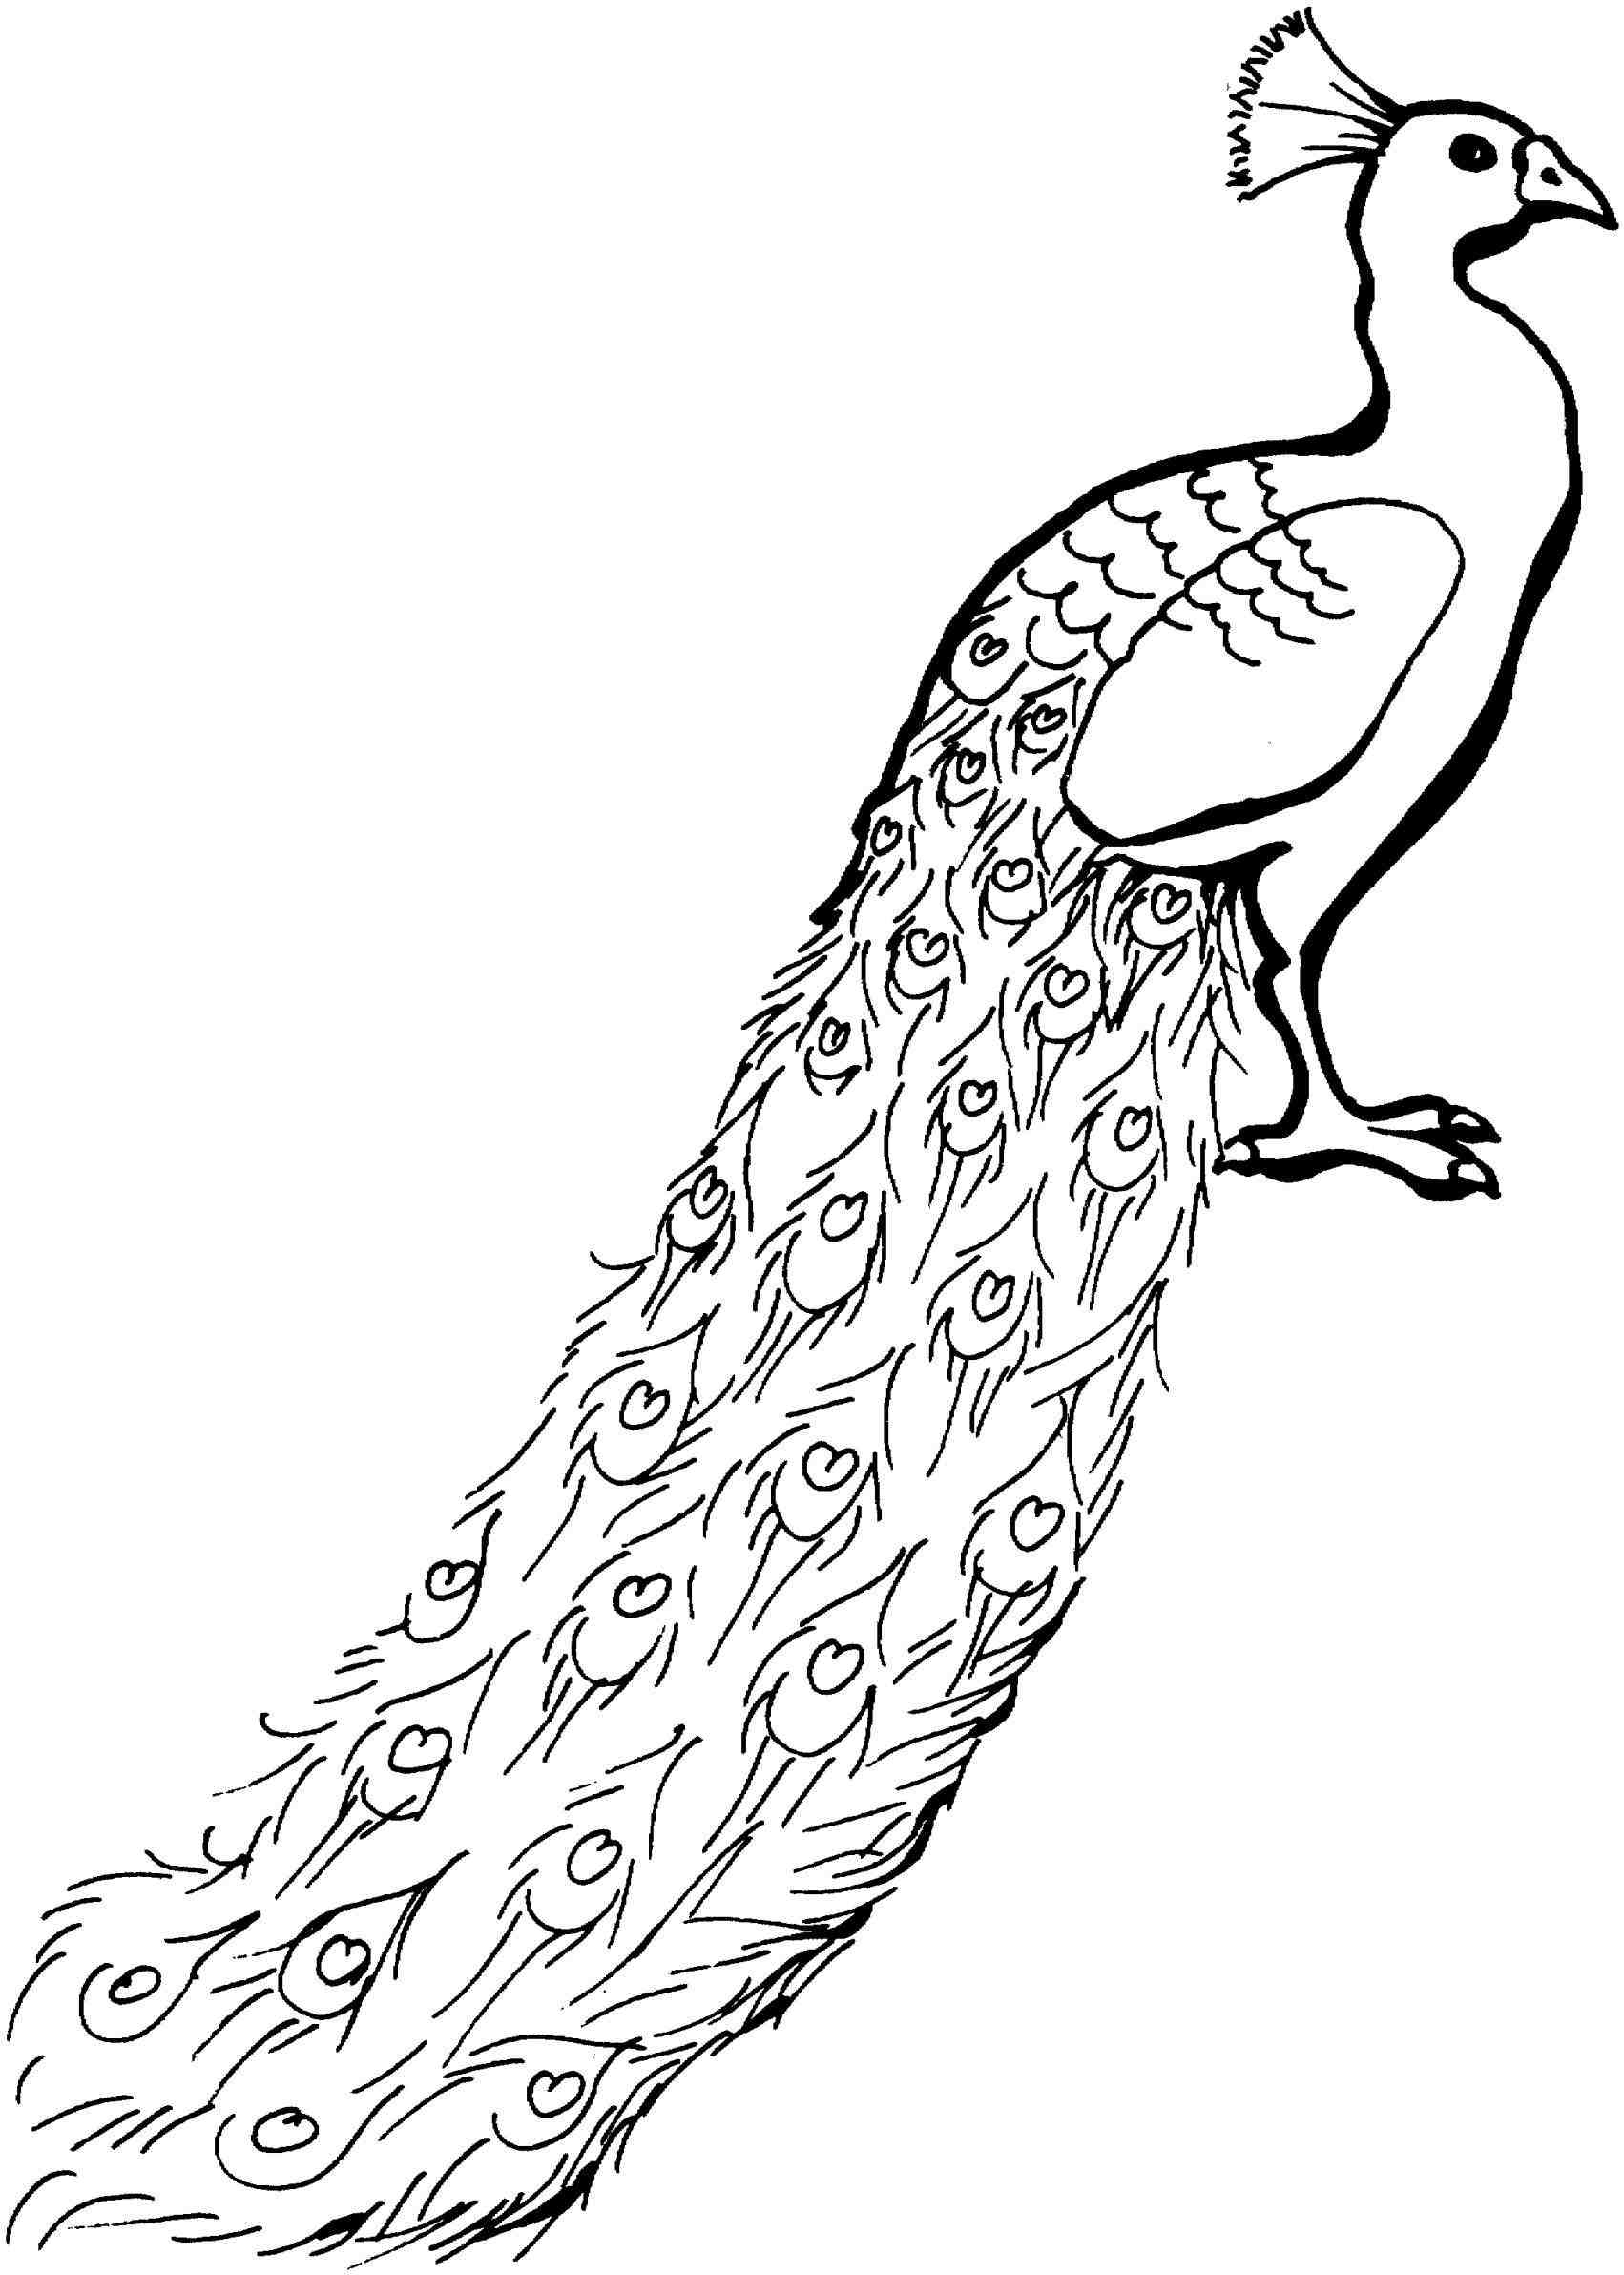 1702x2384 Peacock Black And White Drawing A Swirly Peacock Coloring